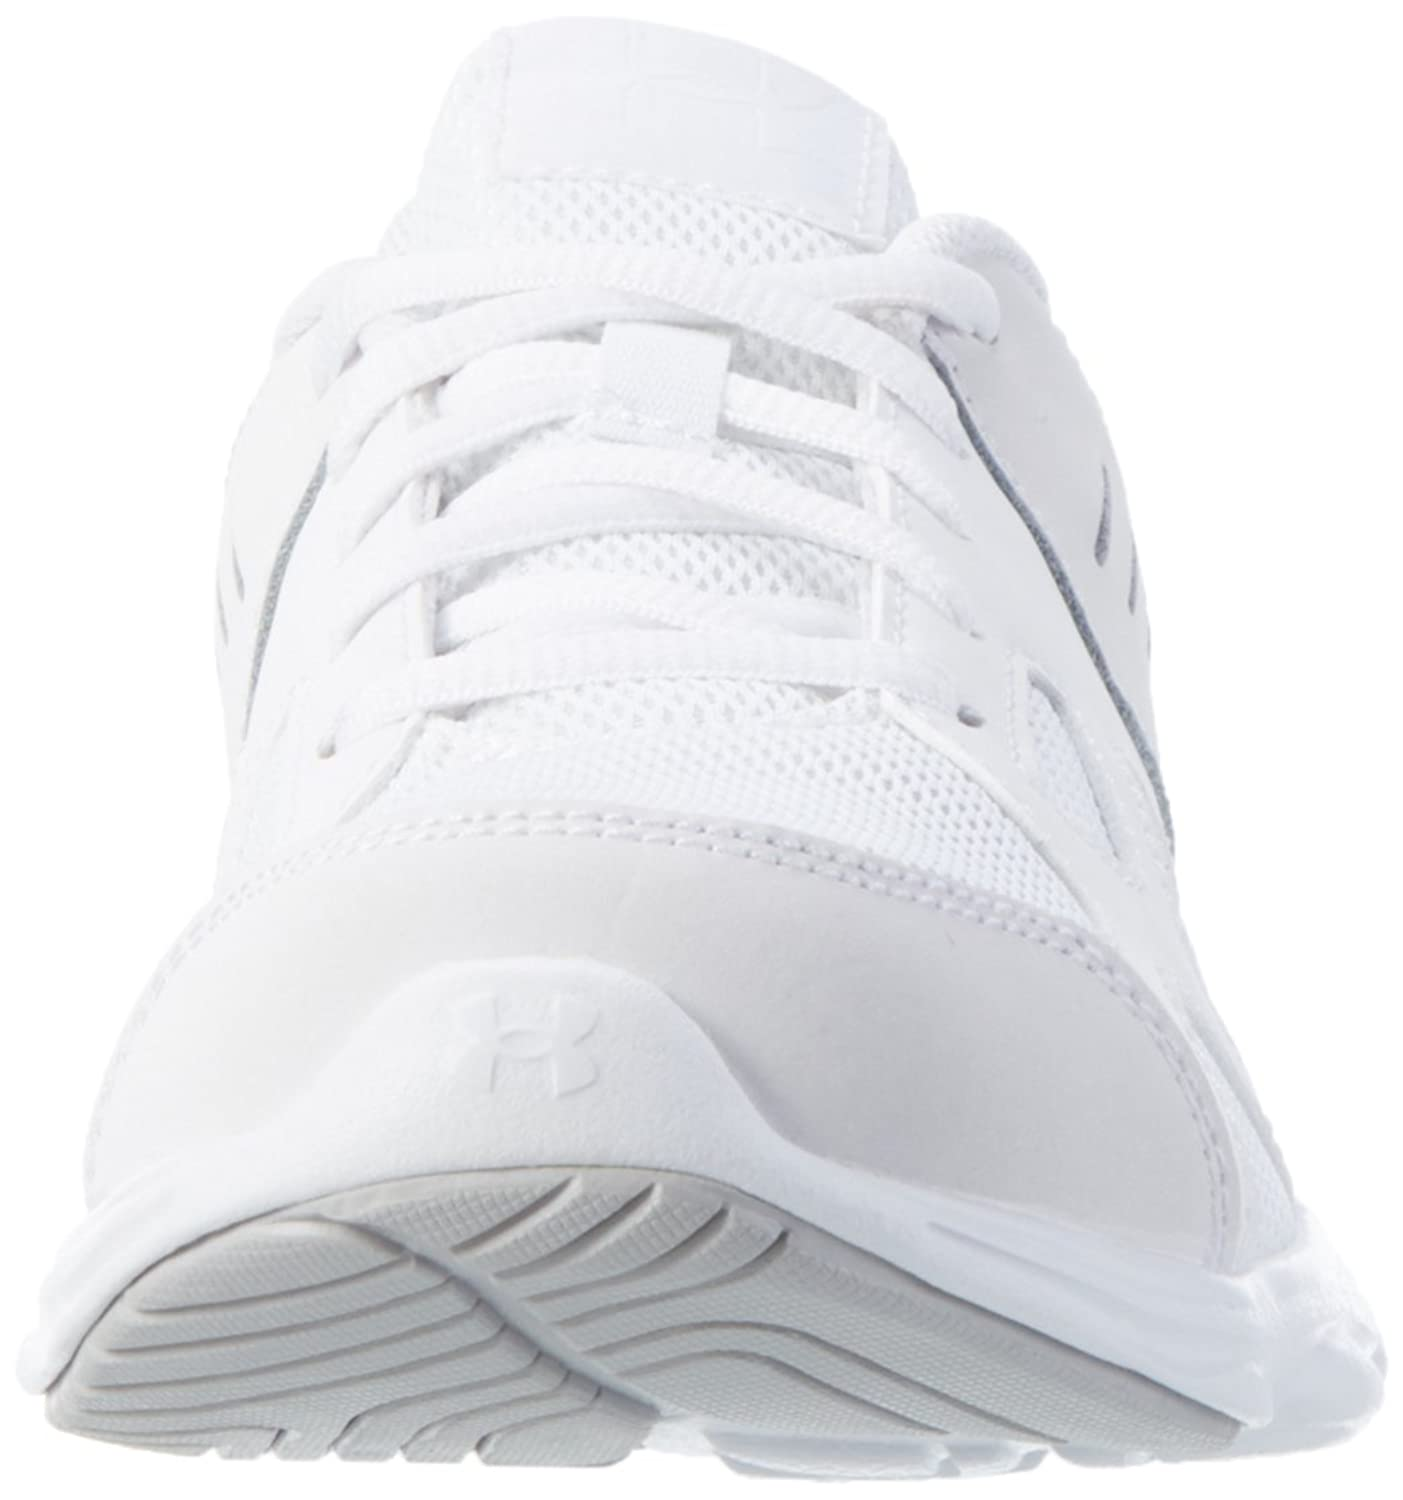 Under Armour Unisex Kids' Gs Pace Running Shoes: Amazon.co.uk: Shoes & Bags